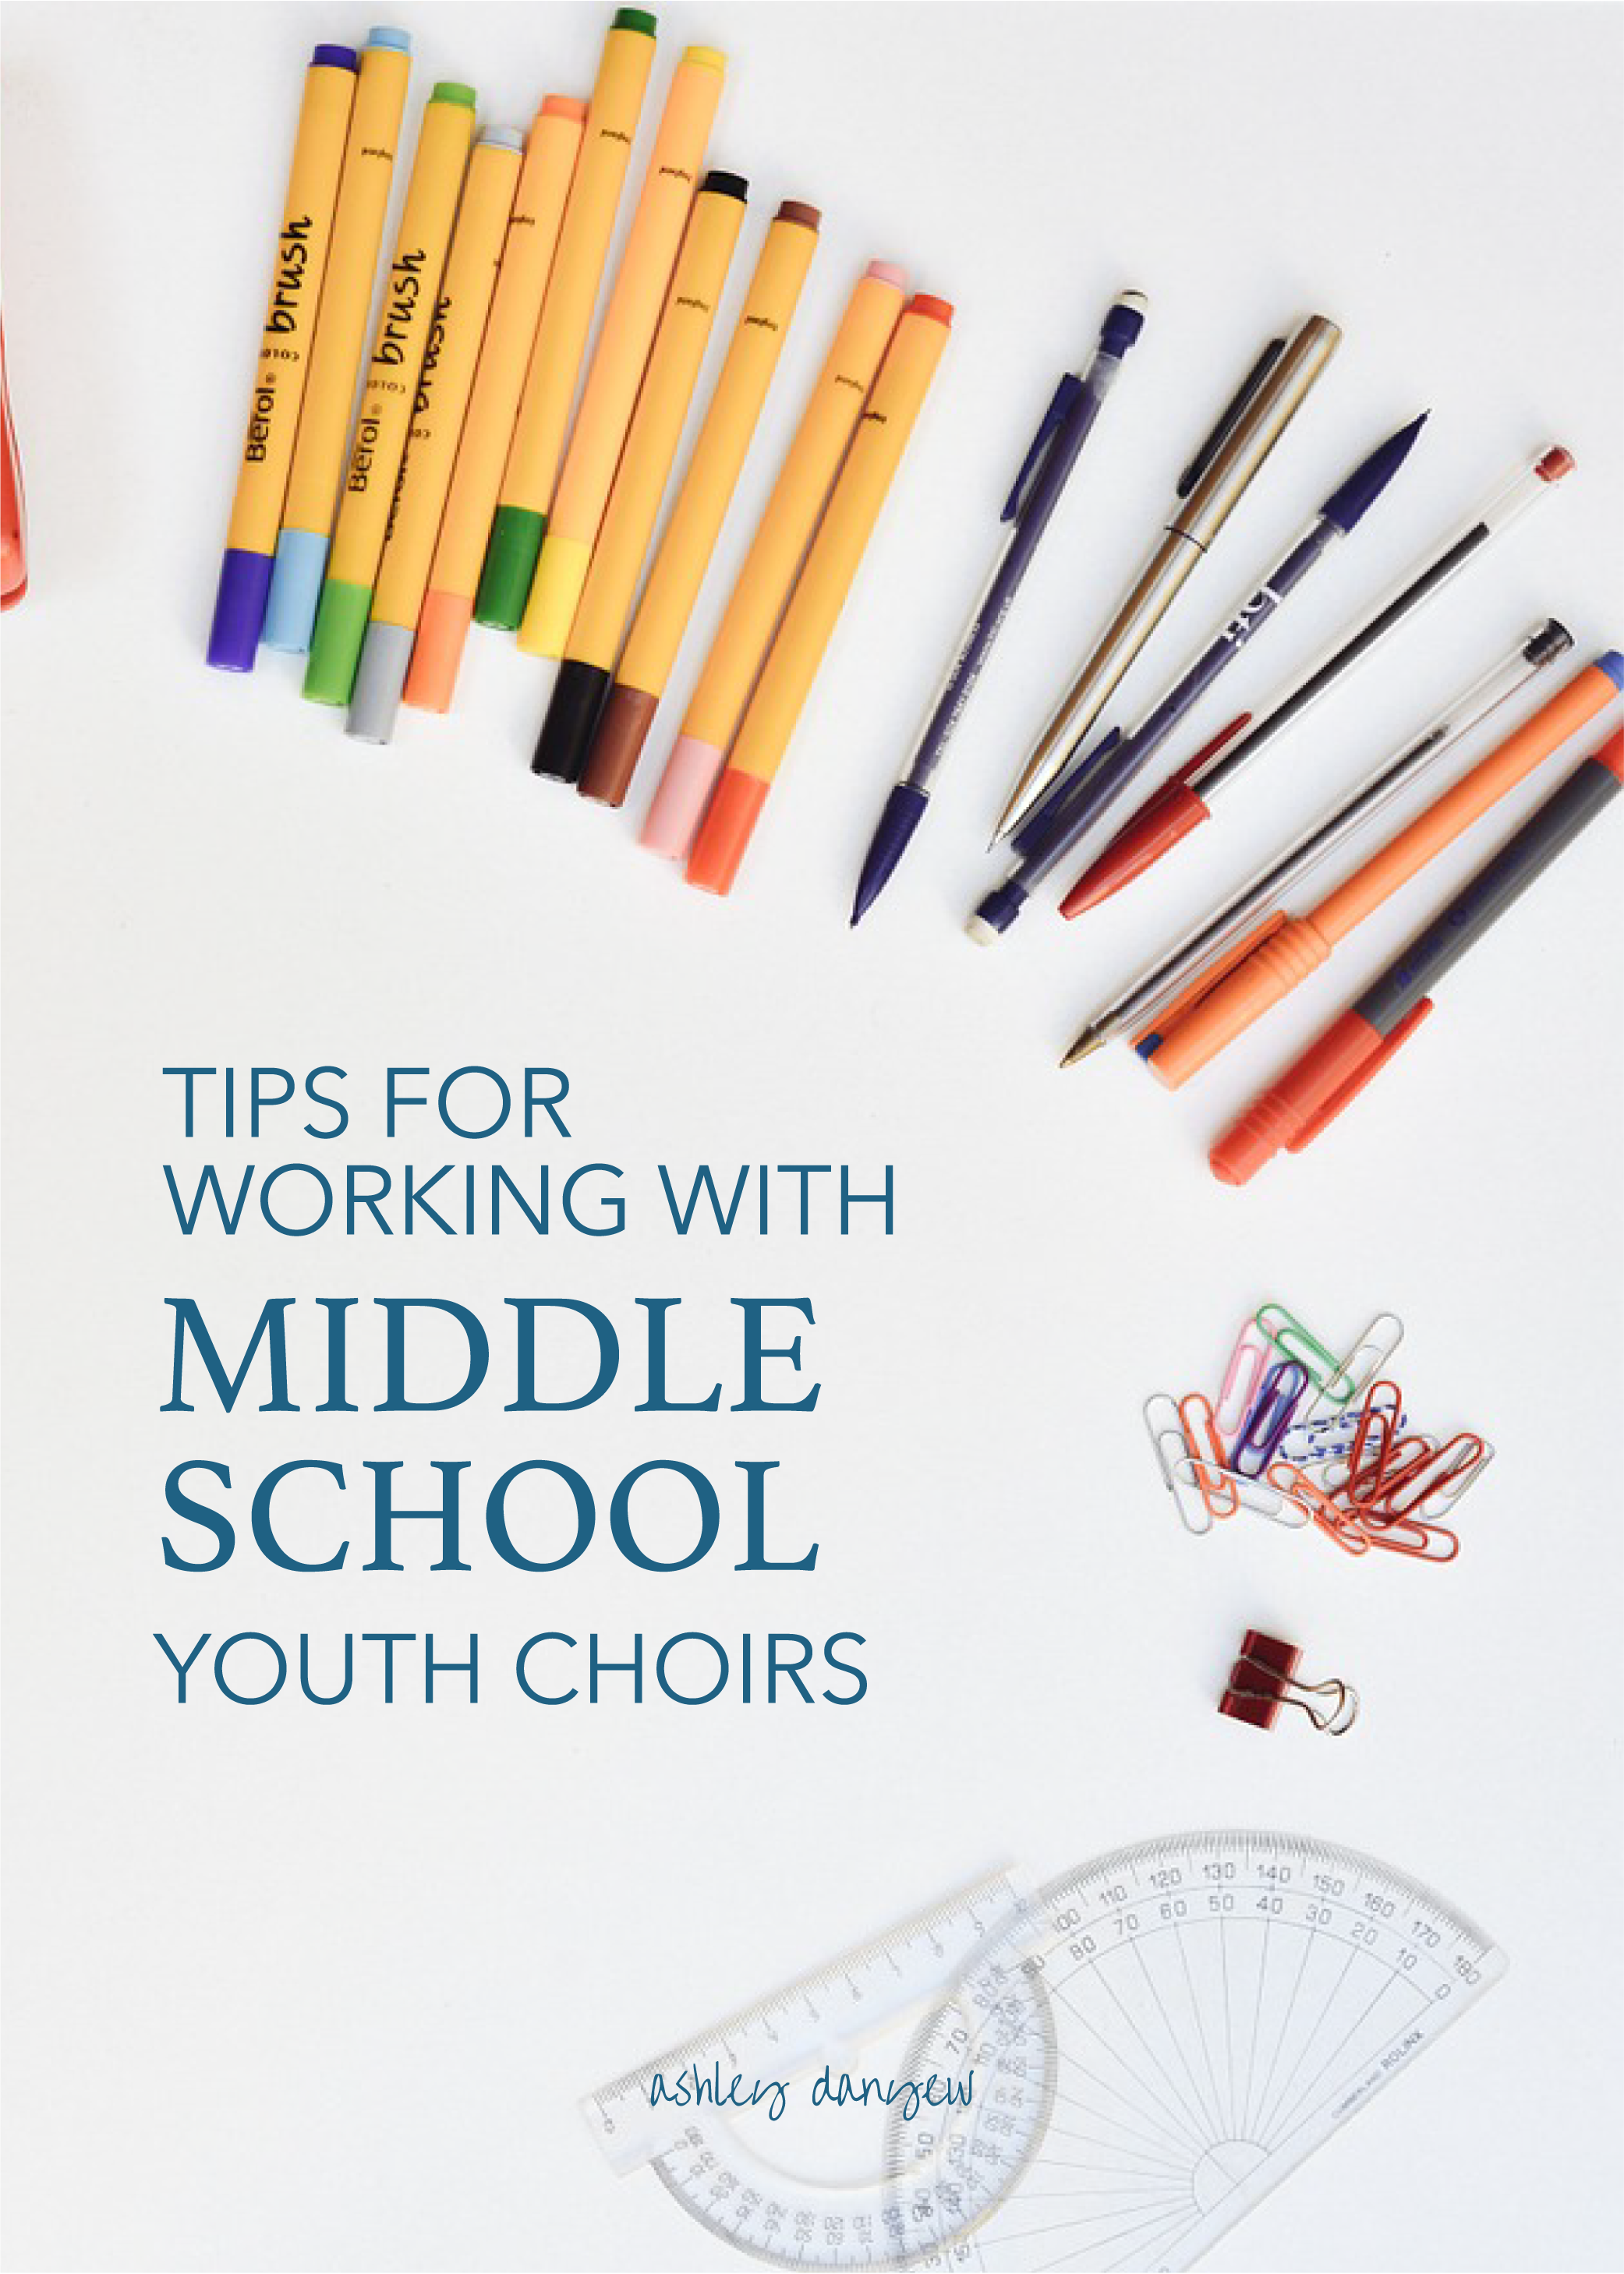 Tips-for-Working-with-Middle-School-Youth-Choirs.png